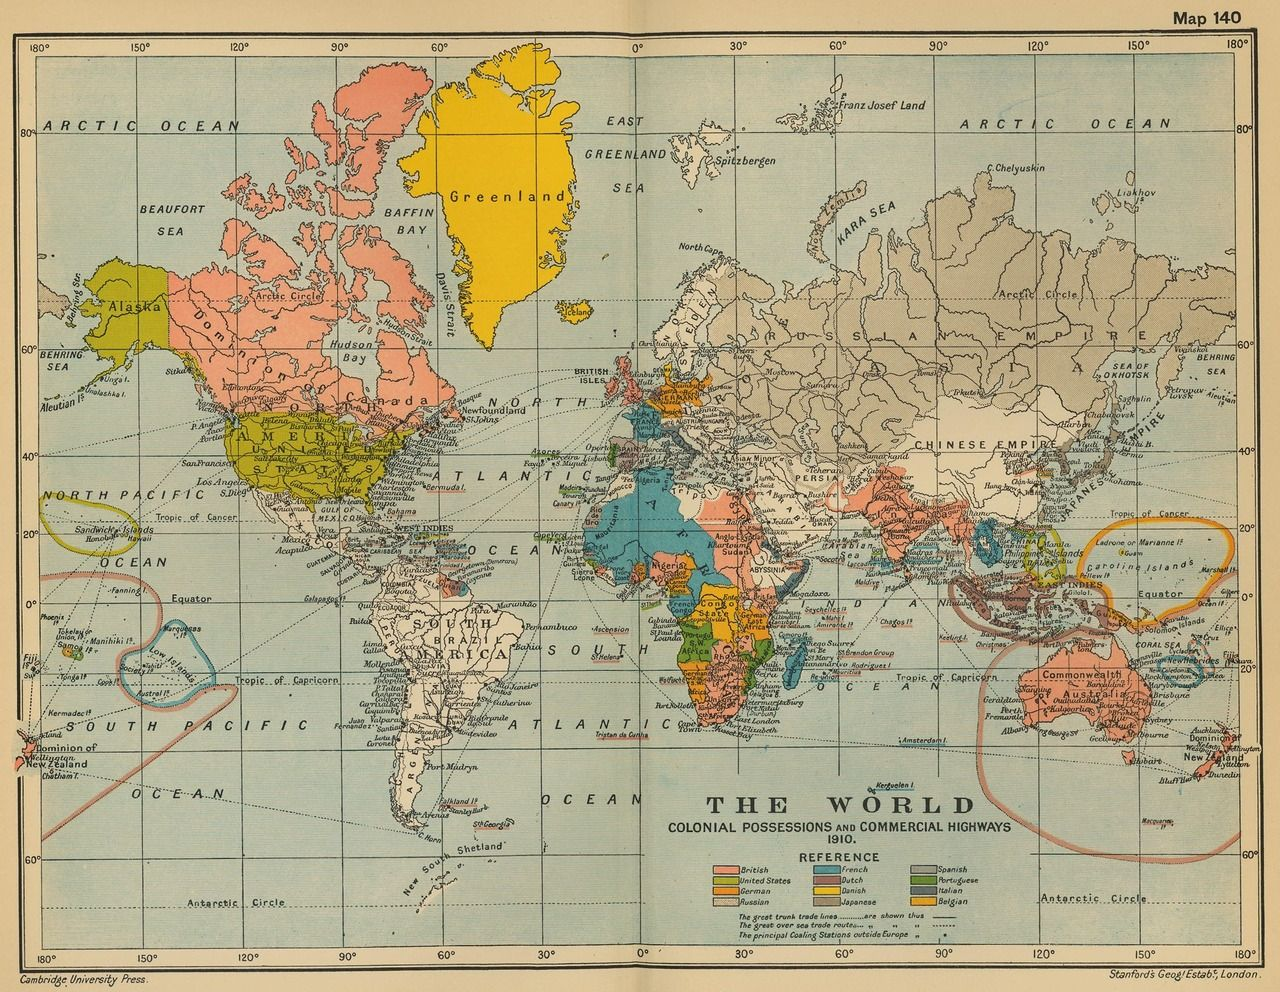 Antique world map cartography pinterest world historical maps perry castaeda map collection ut gumiabroncs Choice Image